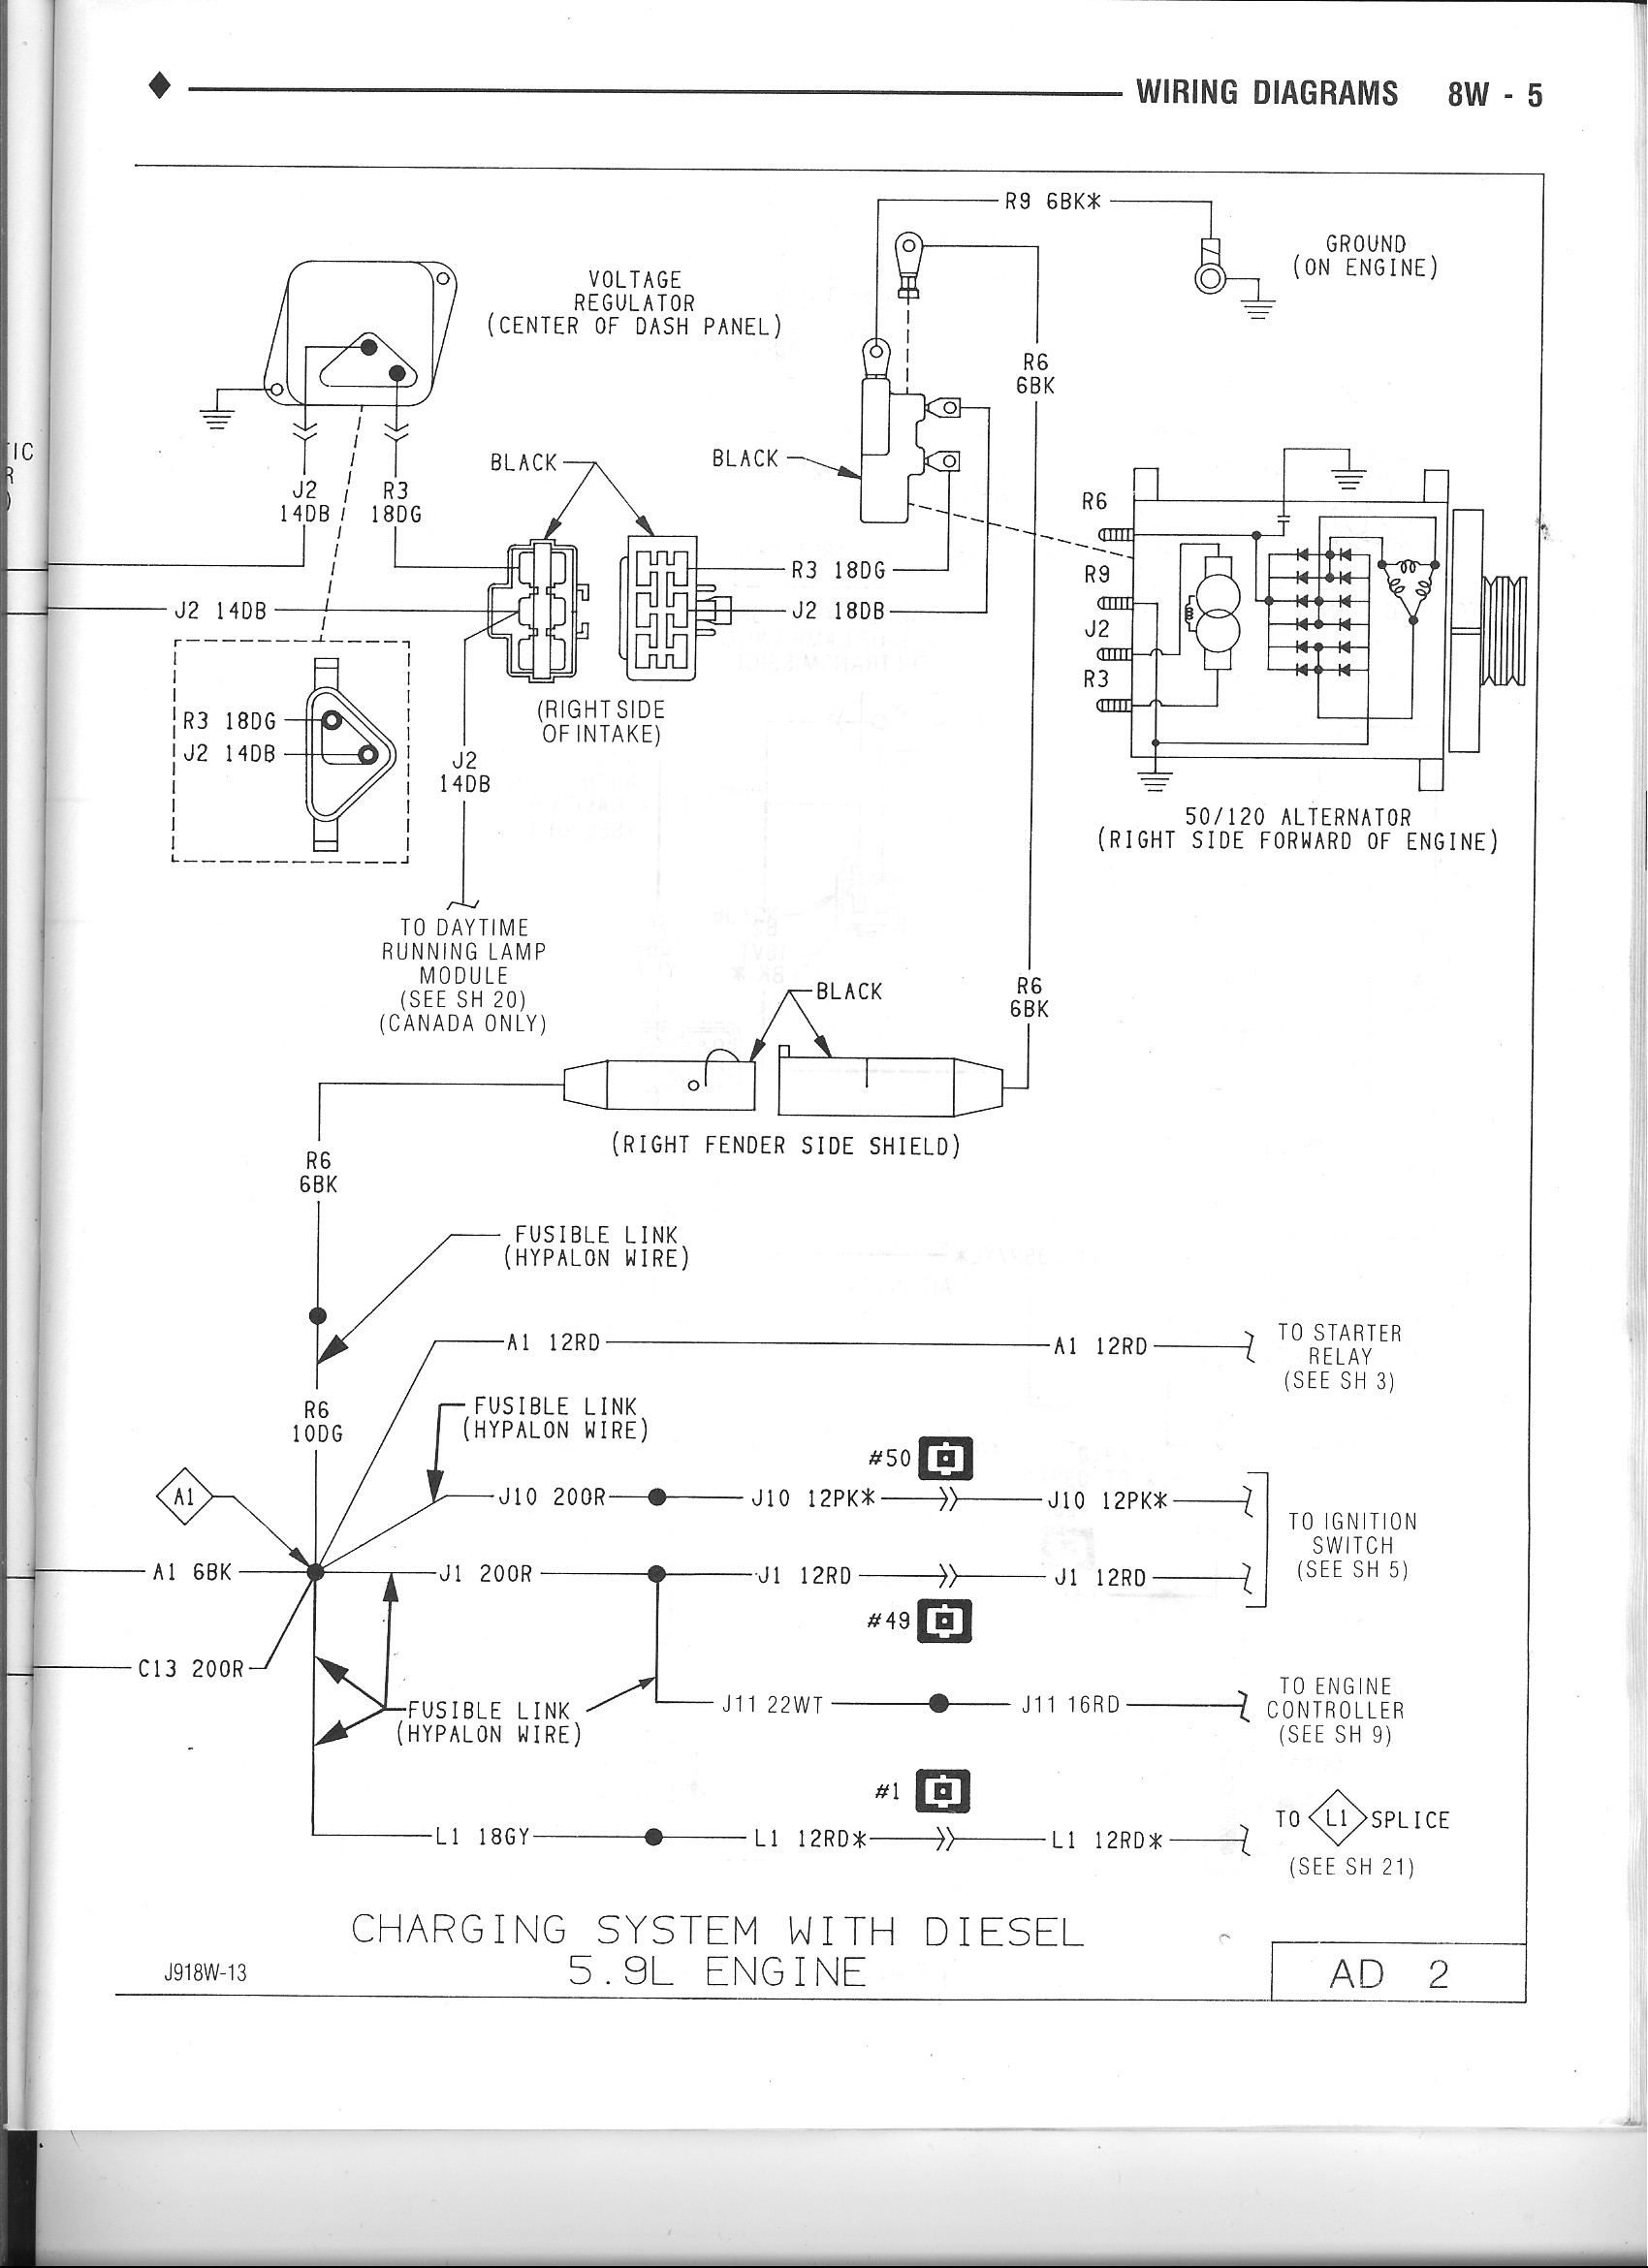 alternator 101 dodge diesel diesel truck resource forums rh dieseltruckresource com 1992 Dodge Dakota Wiring Diagram 1991 Dodge B350 Wiring Diagrams